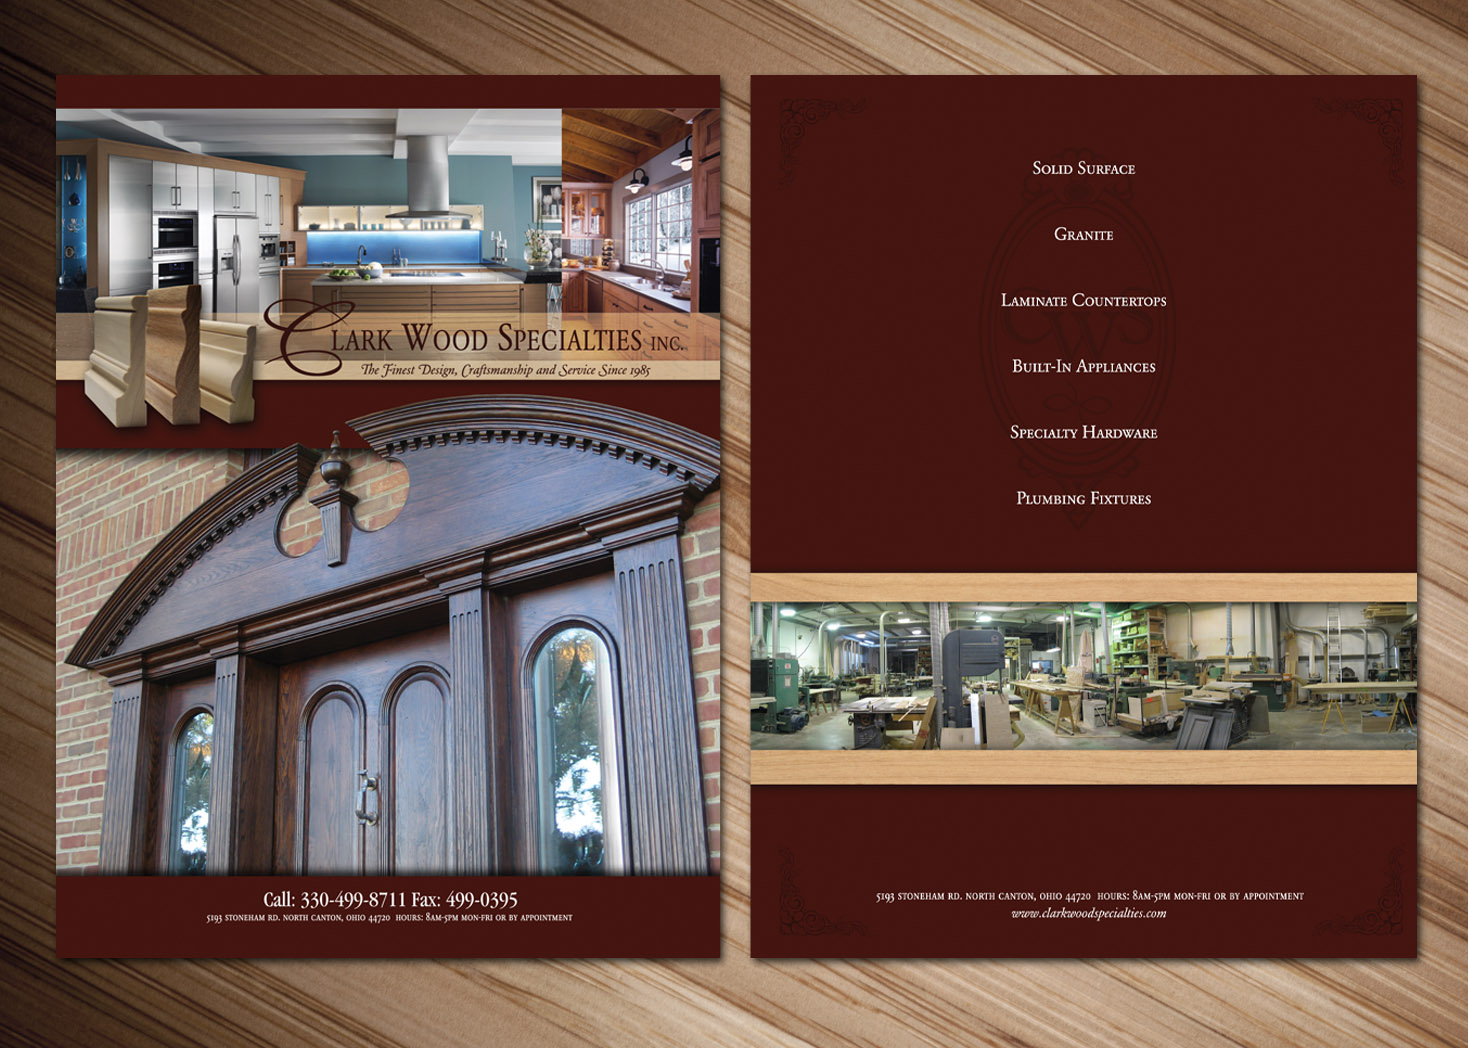 Clark Wood Specialties - Pocket Folder Design - Lehman Design